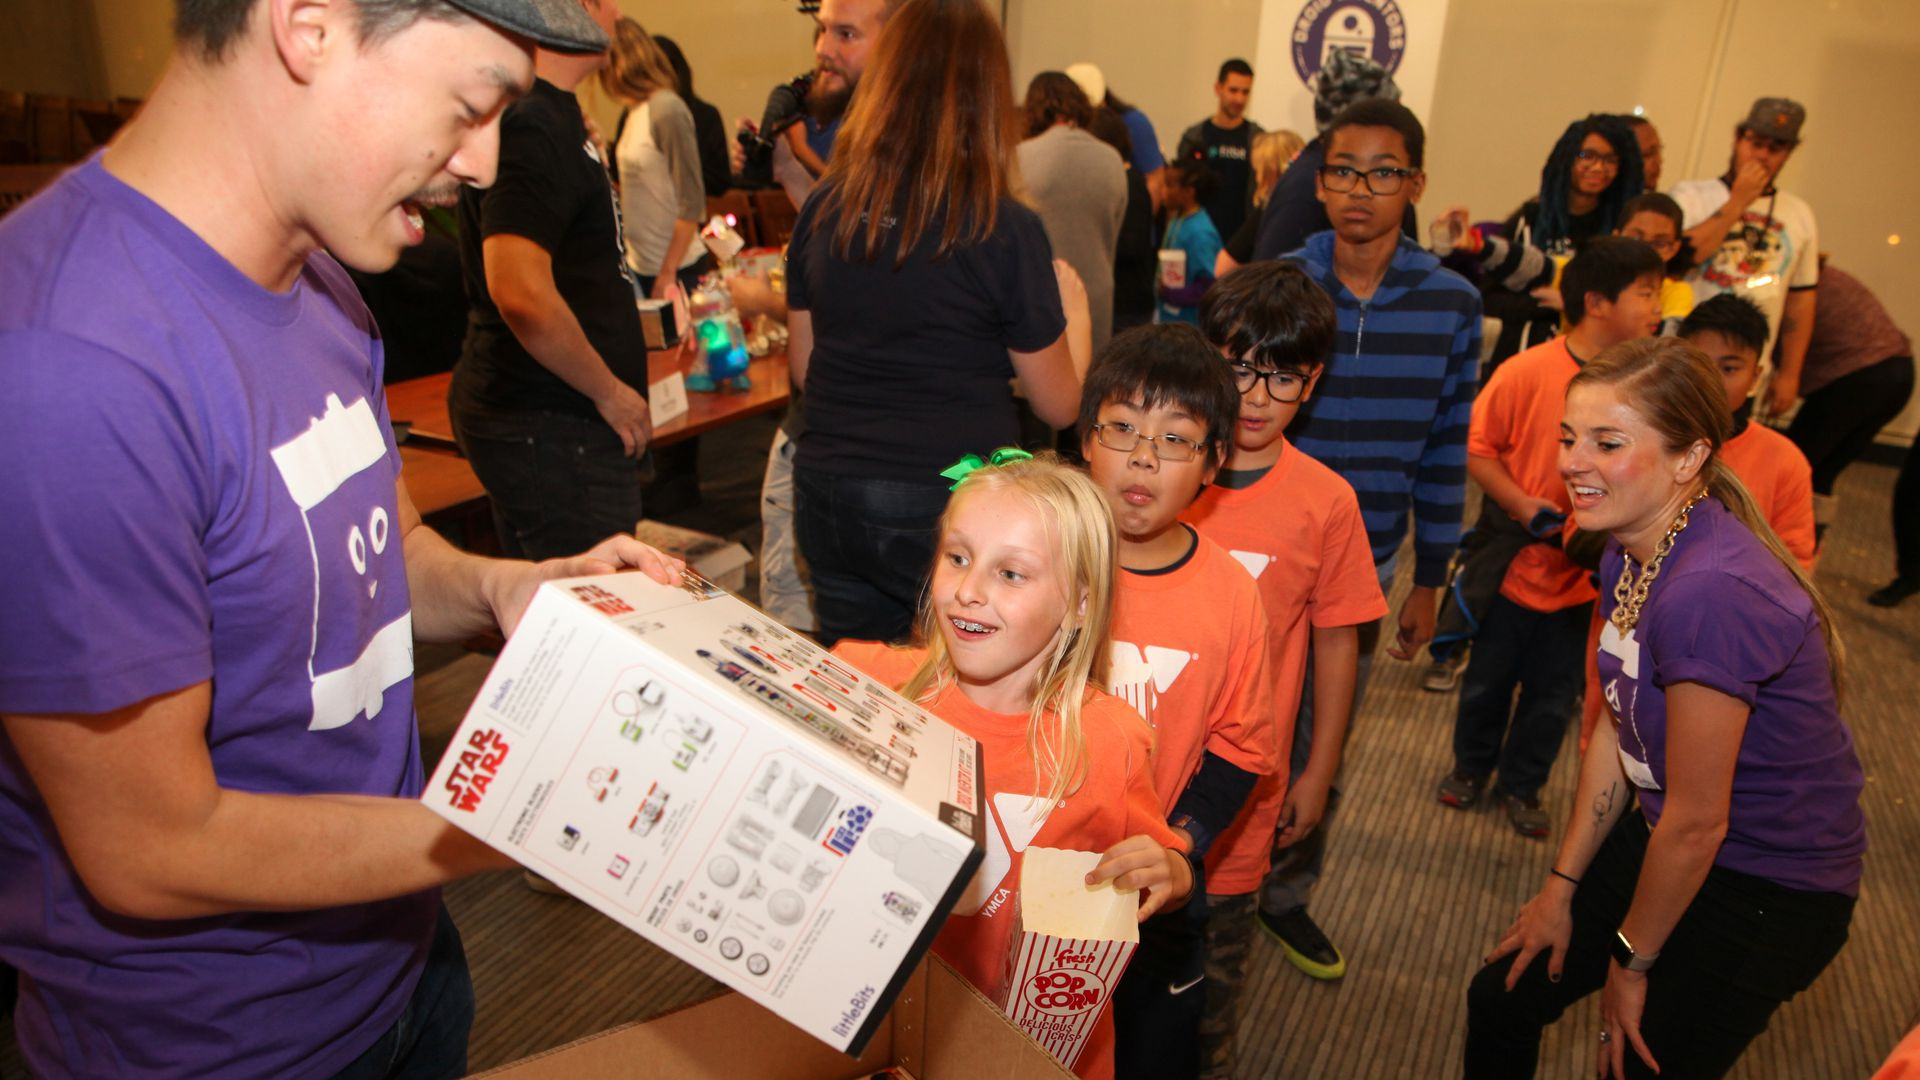 In this image, a man hands out toy building and code kits to a line of children. The first child in line is a young blonde girl.